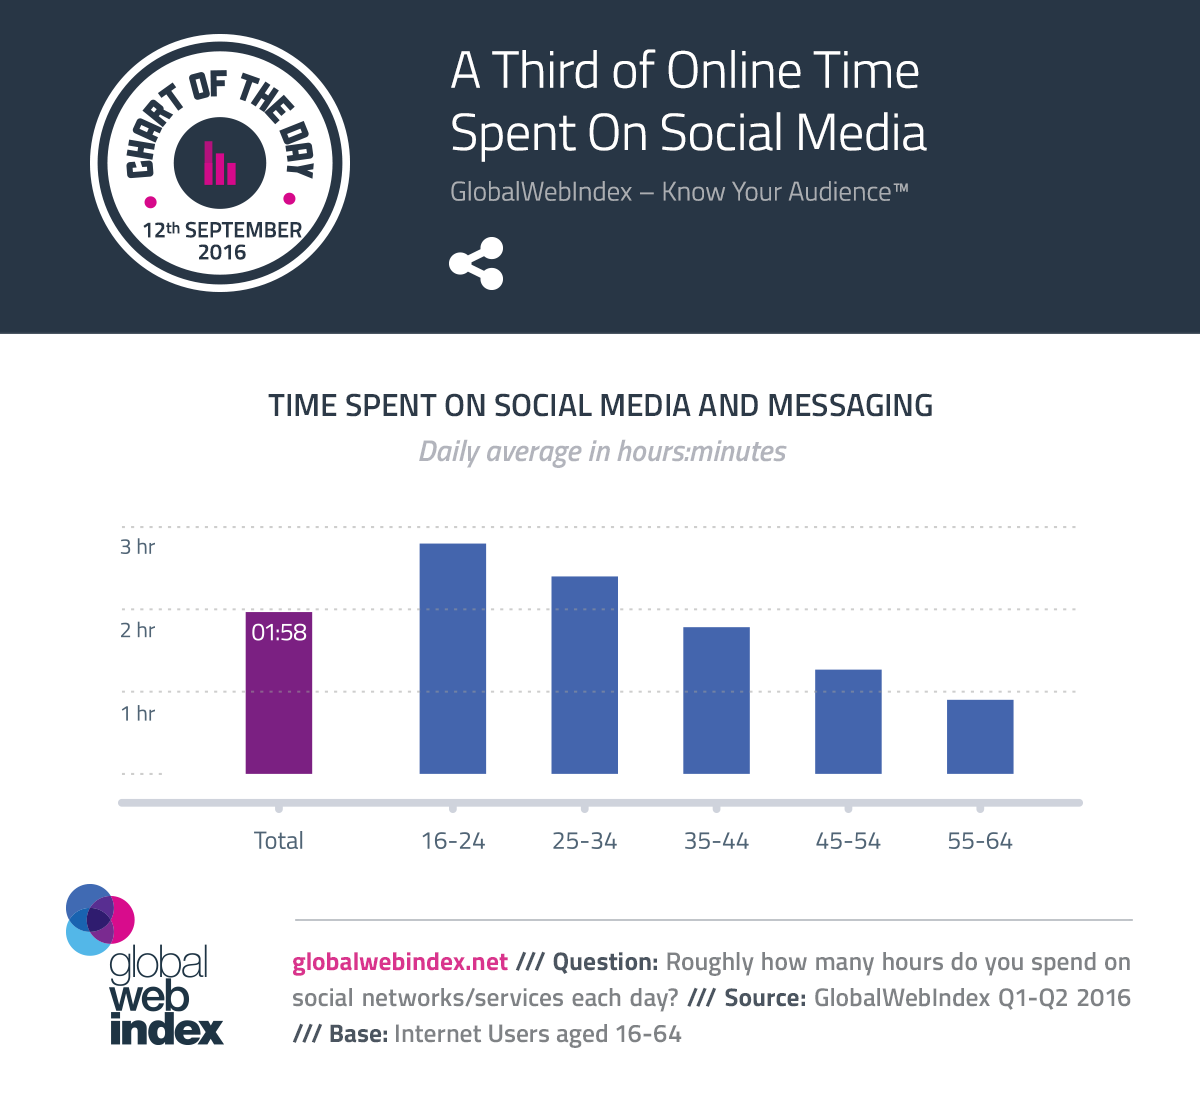 A Third of Online Time Spent On Social Media